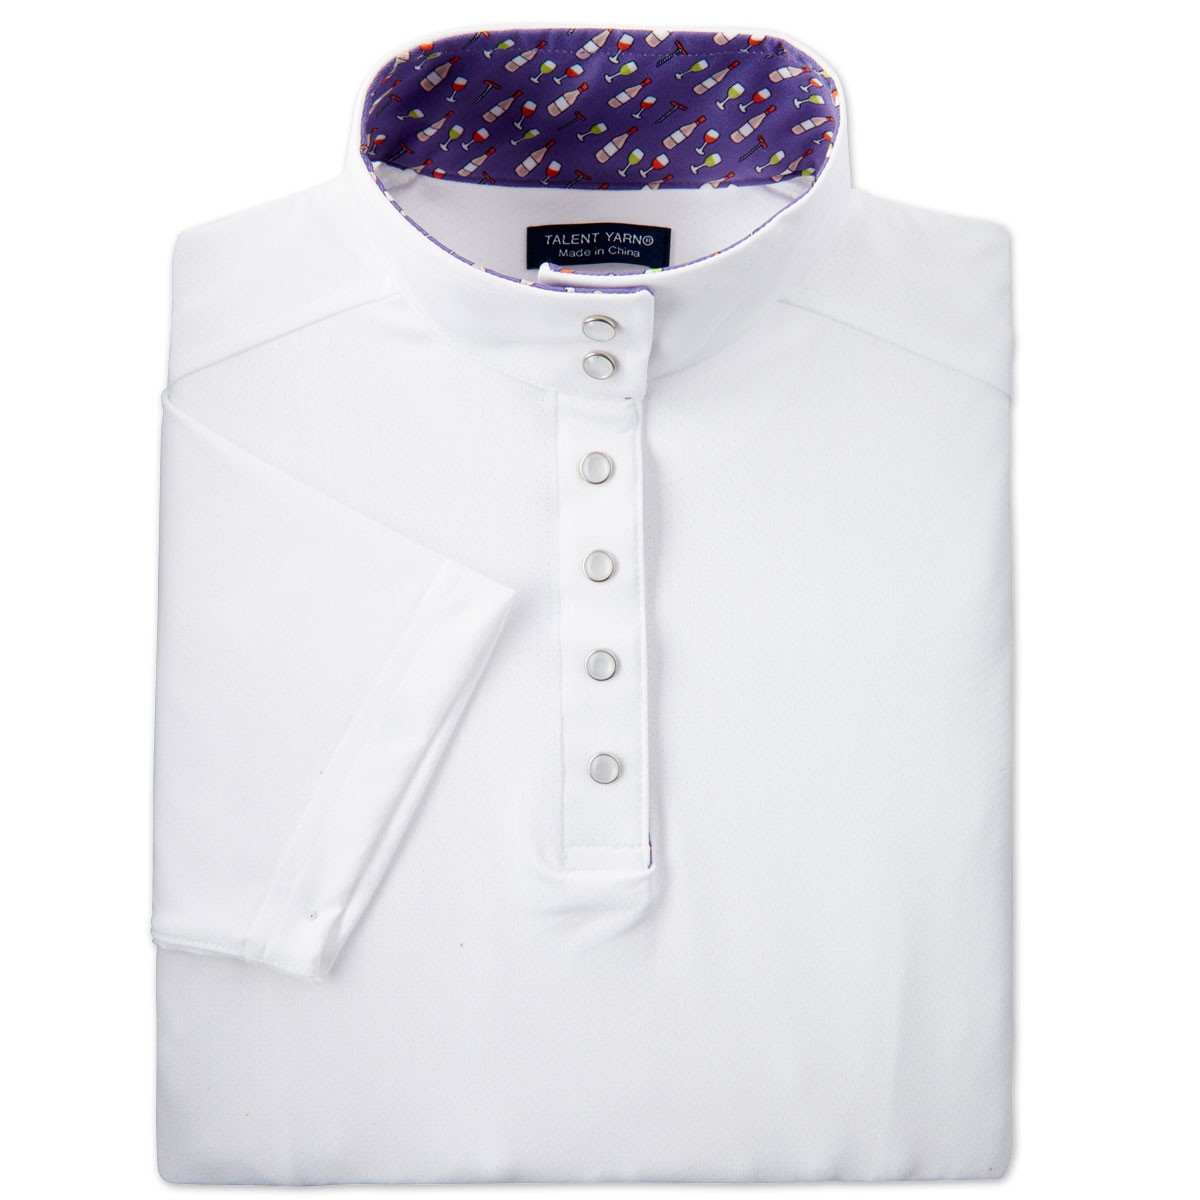 Essex Classics Fancy Snap Talent Yarn Shirt-Short Sleeve